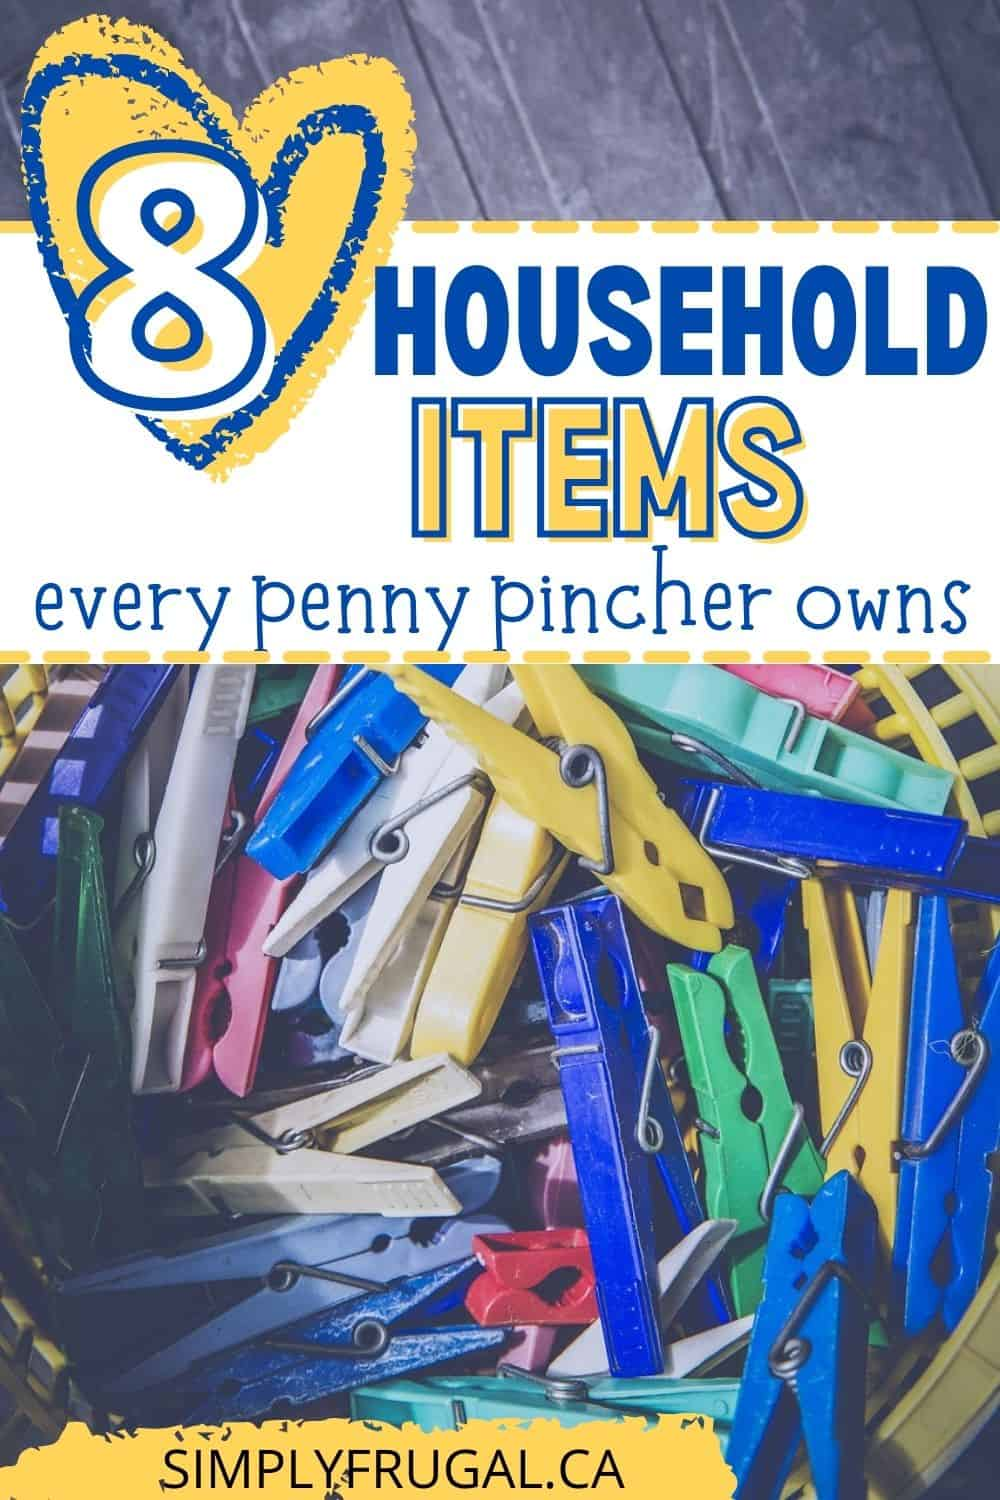 Household items that every penny pincher owns